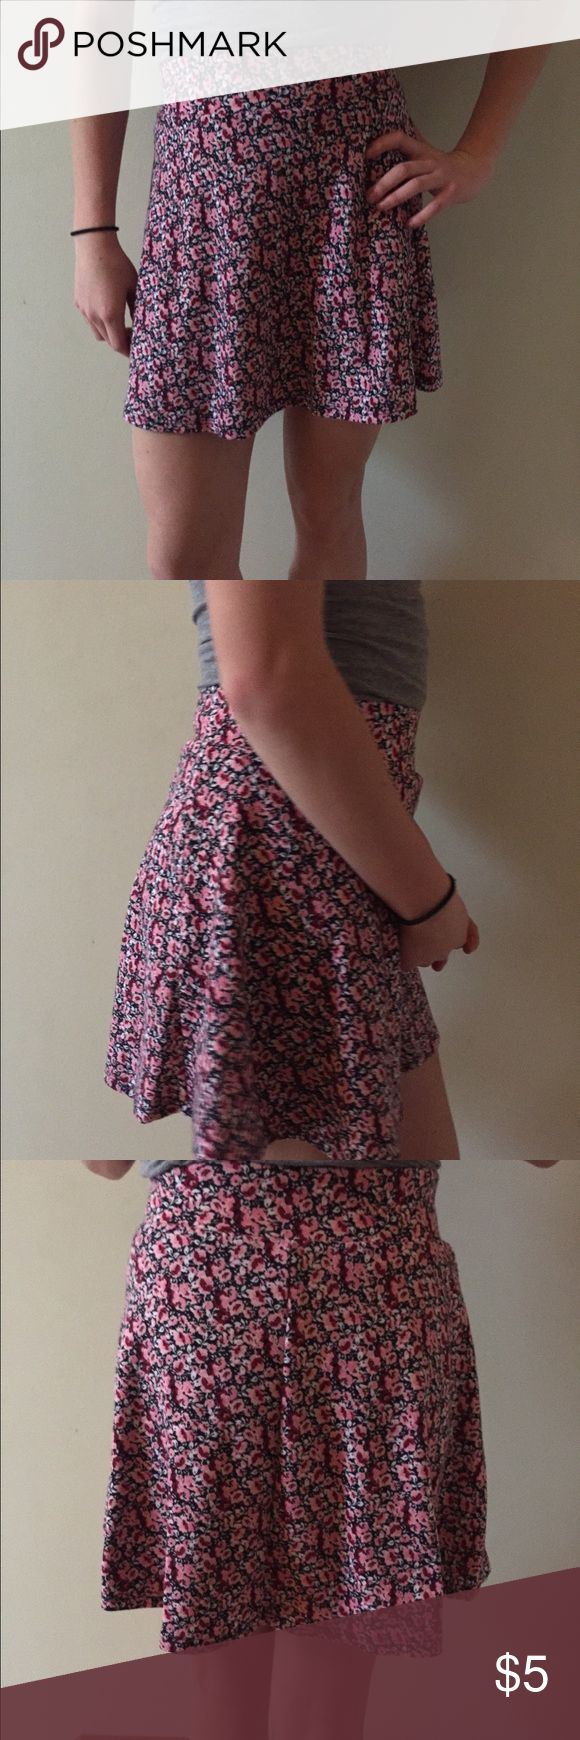 Pink Skater Skirt A gently used pink skater skirt in excellent condition! Skirts Circle & Skater